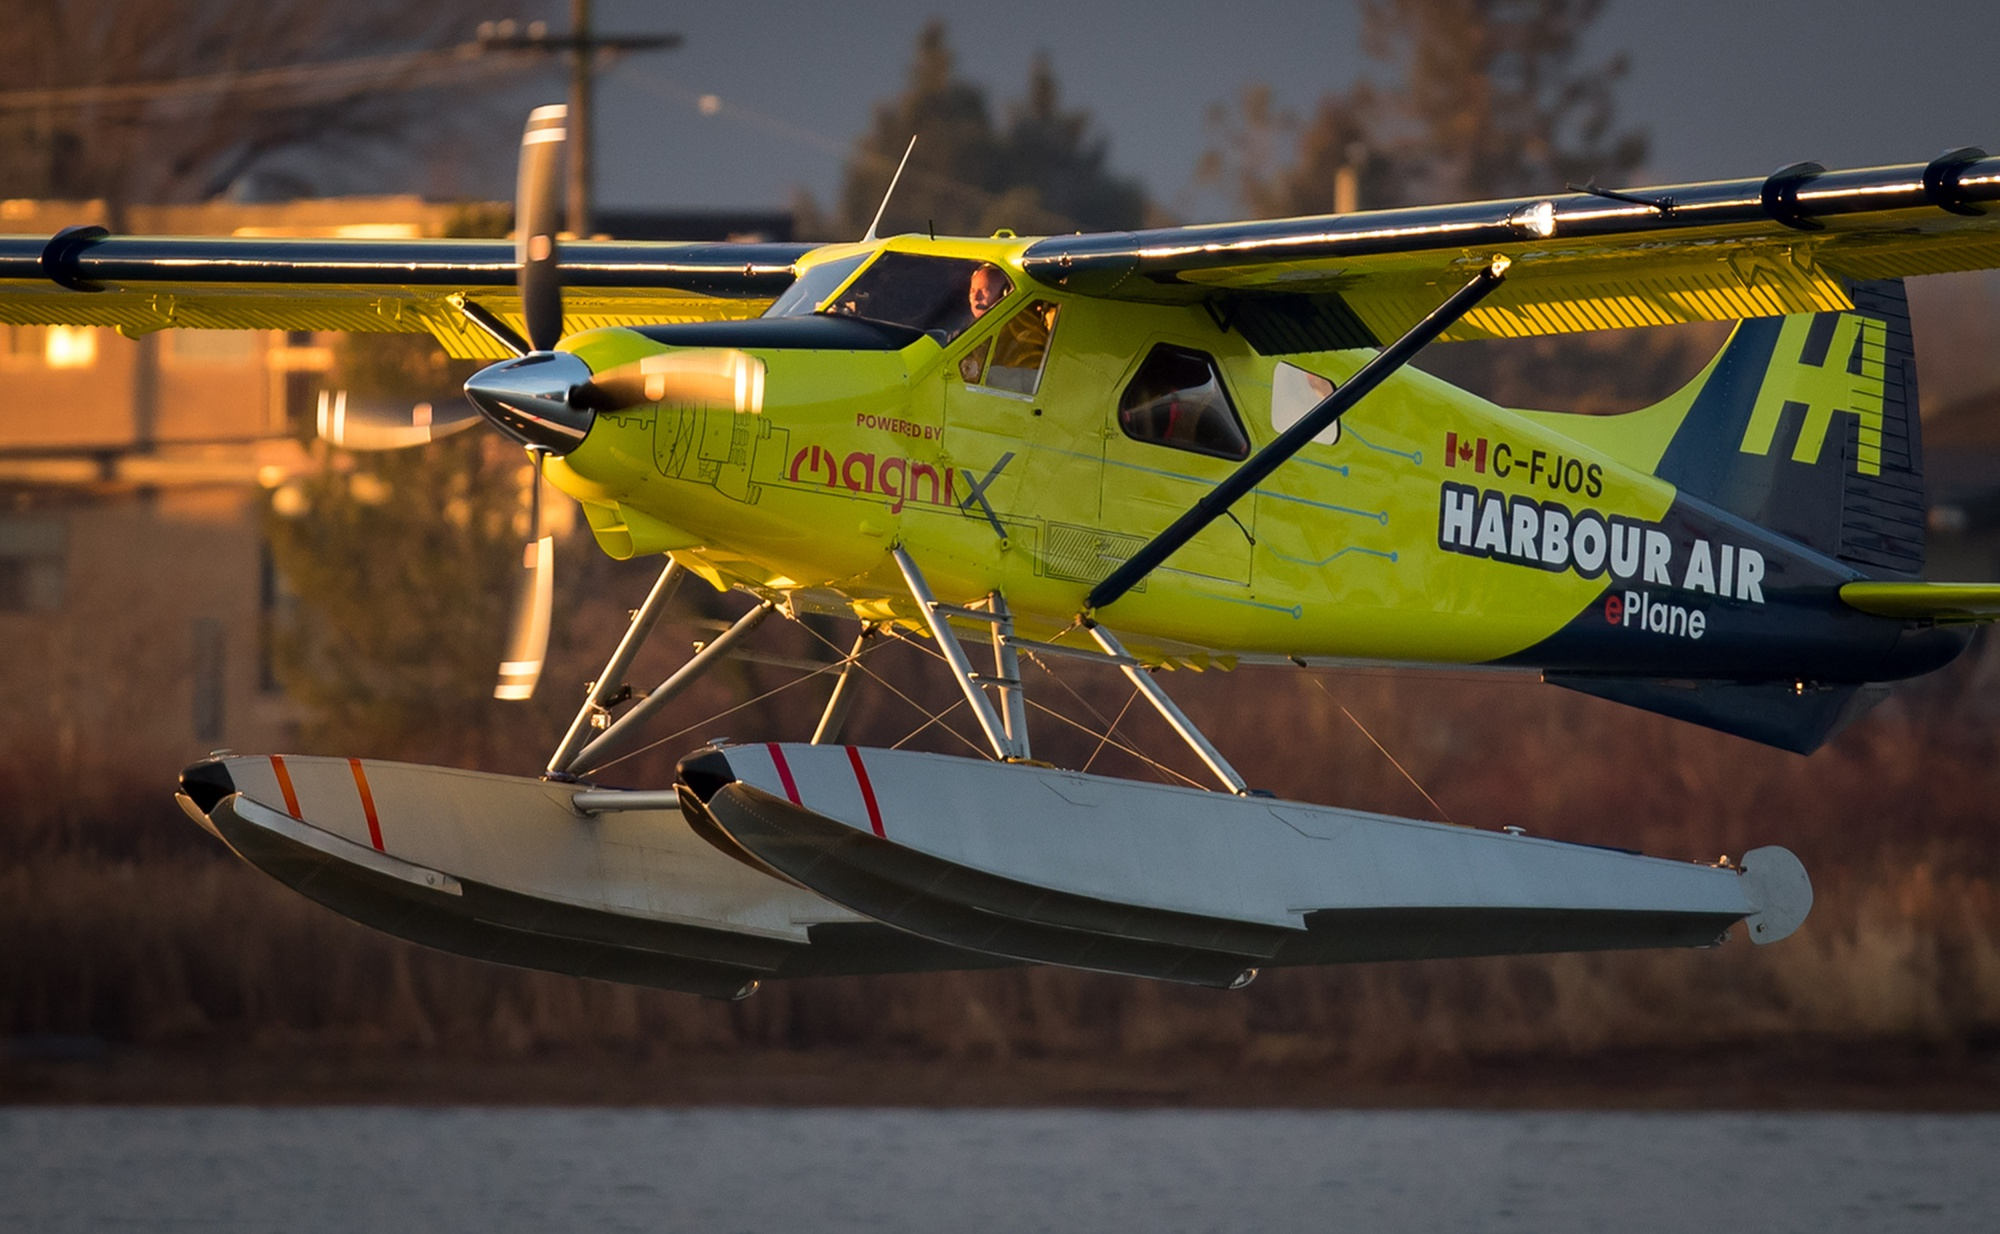 harbour air electric powered seaplane